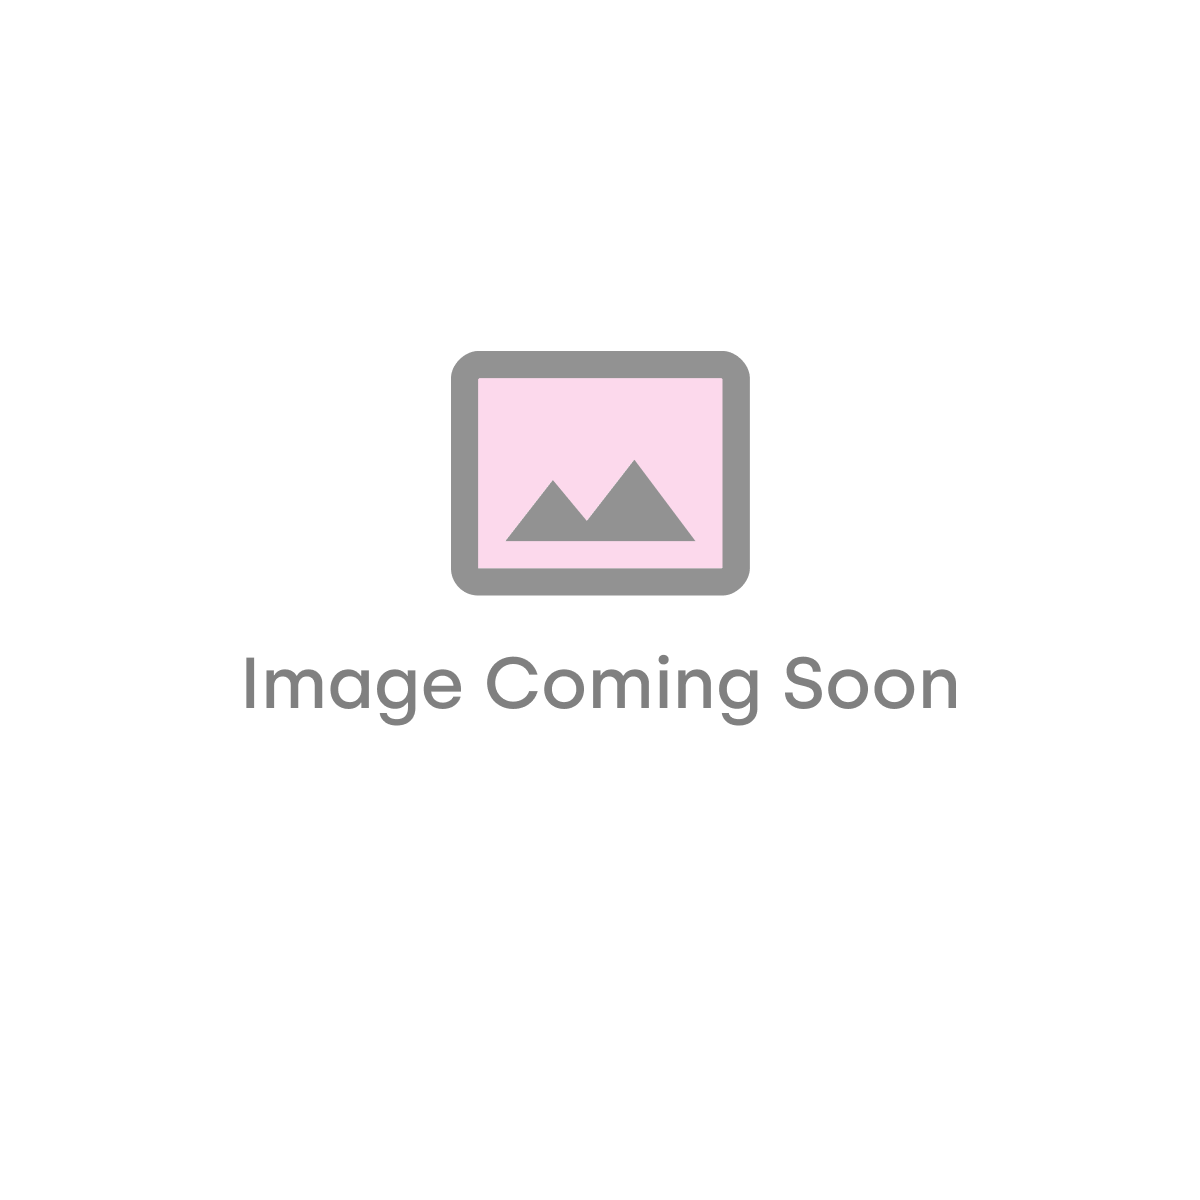 Aqualisa Quartz QZE8501 8.5kw Electric Shower - Chrome (10882)